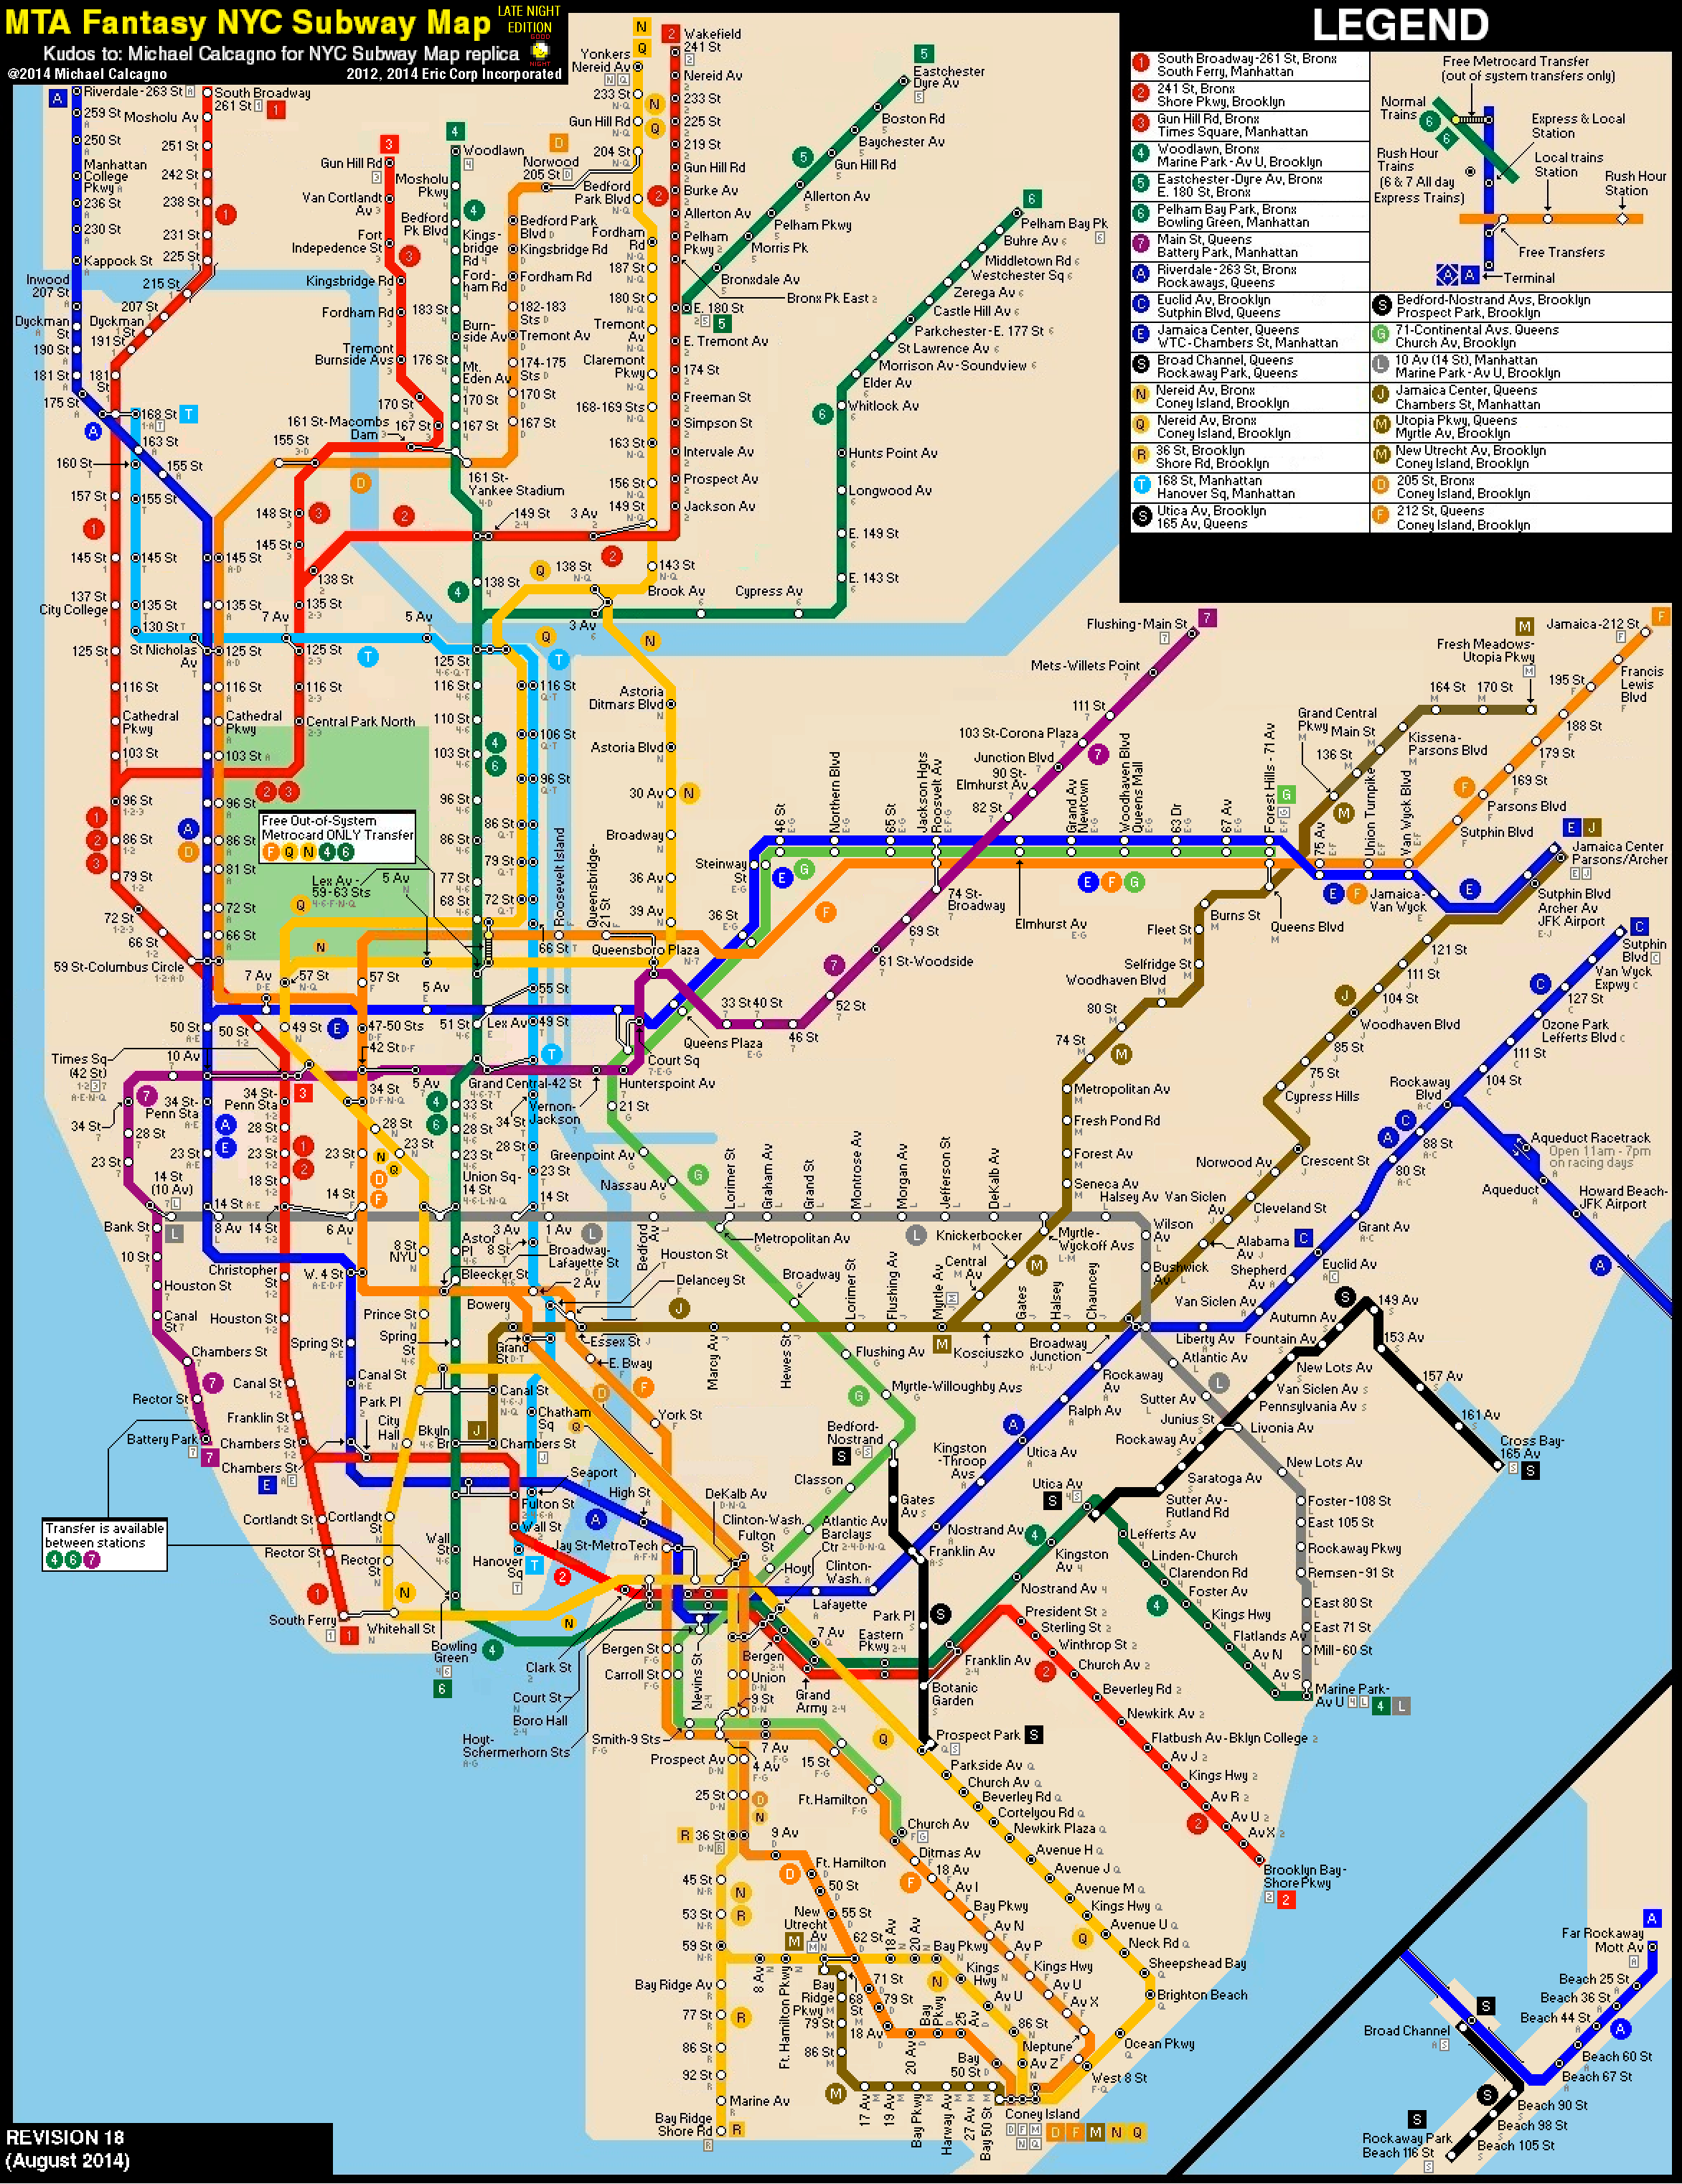 Alternative Nyc Subway Map.Nyc Subway Fantasy Map Revision 18 Late Nights By Ecinc2xxx On